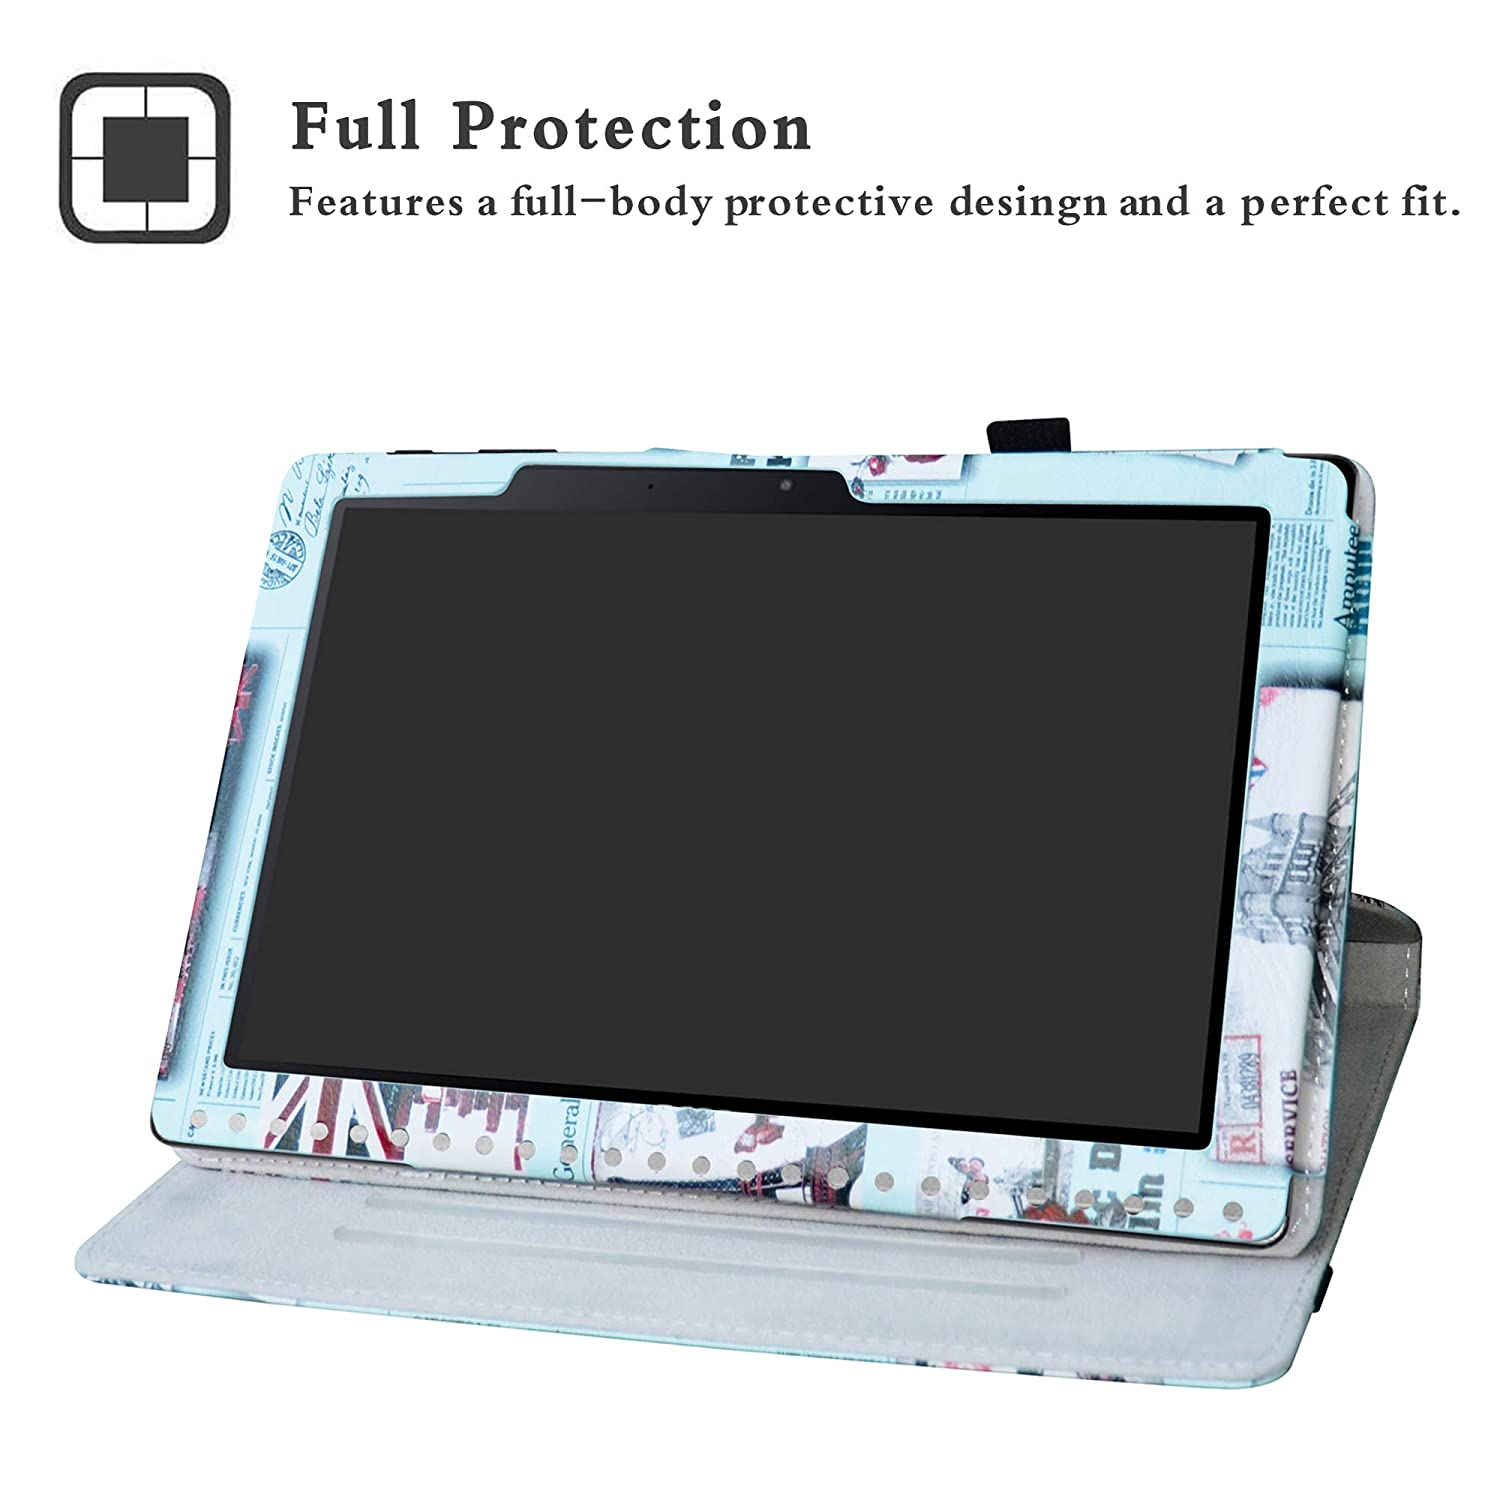 Map White Acer Iconia One 10 B3-A50 Case,Labanema Premium PU Leather 360 Degree Rotating Flip Cover for Acer Iconia One 10 B3-A50 10.1 inch 2018 Tablet